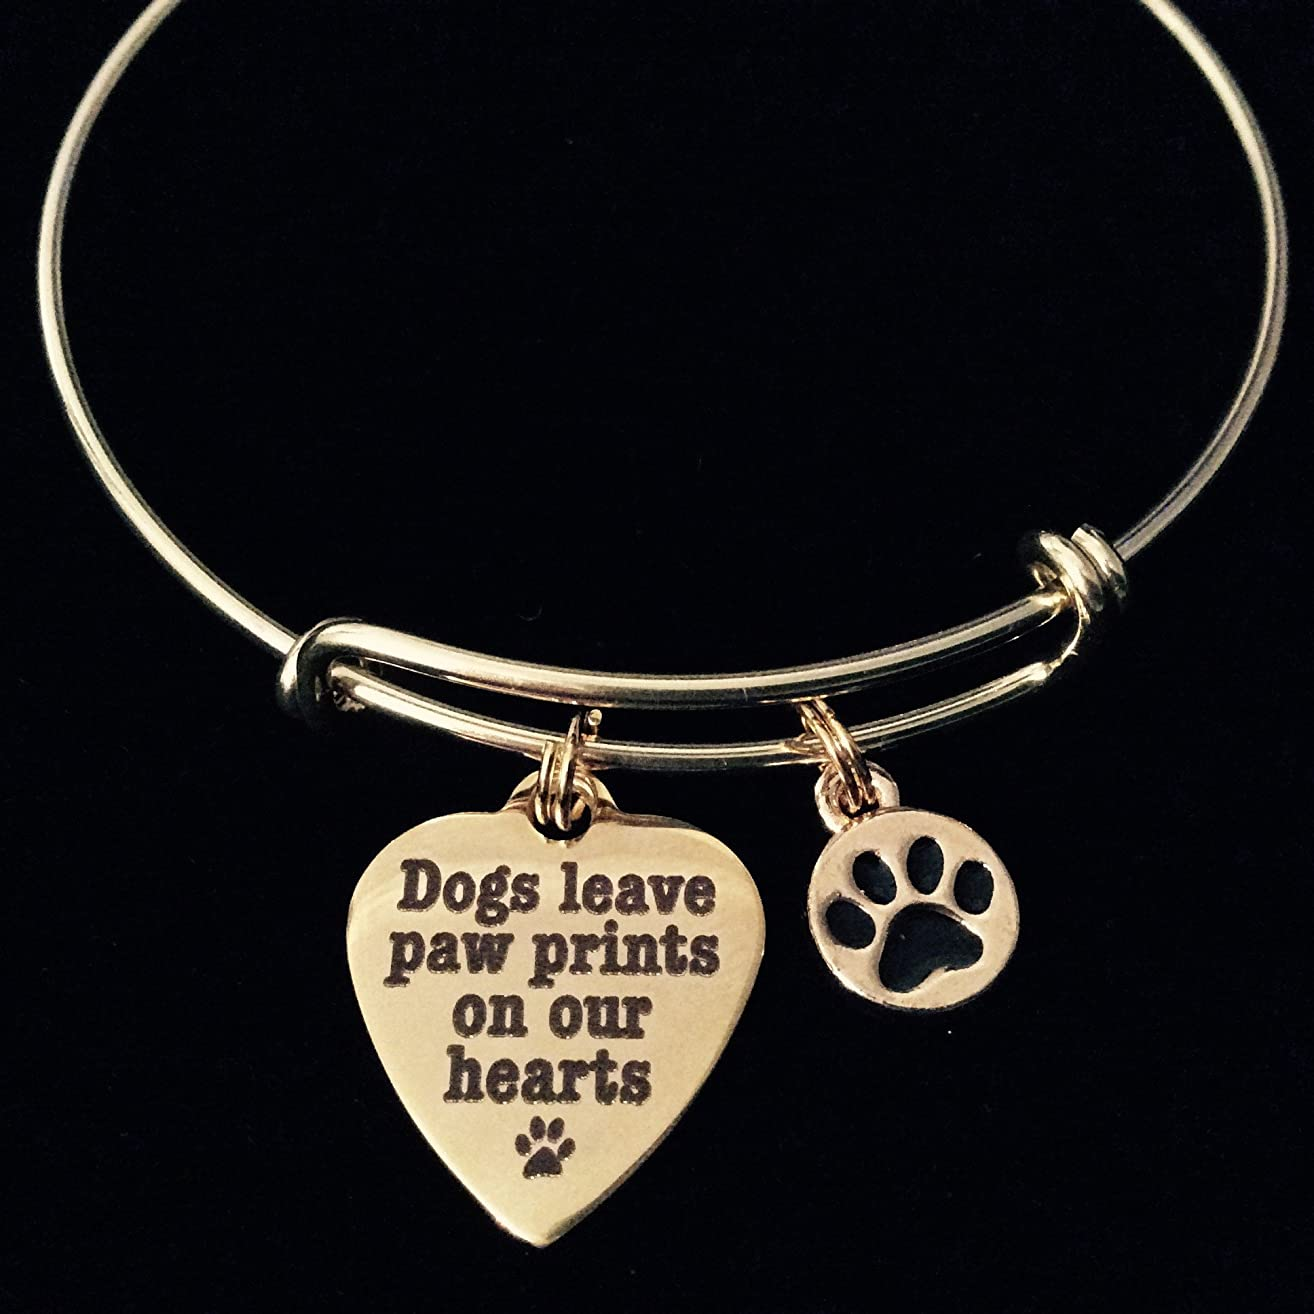 Dogs Leave Paw Prints on our Heart Charm Gold Expandable Adjustable Wire Bangle Bracelet Meaningful Gift Animal Lover Gift